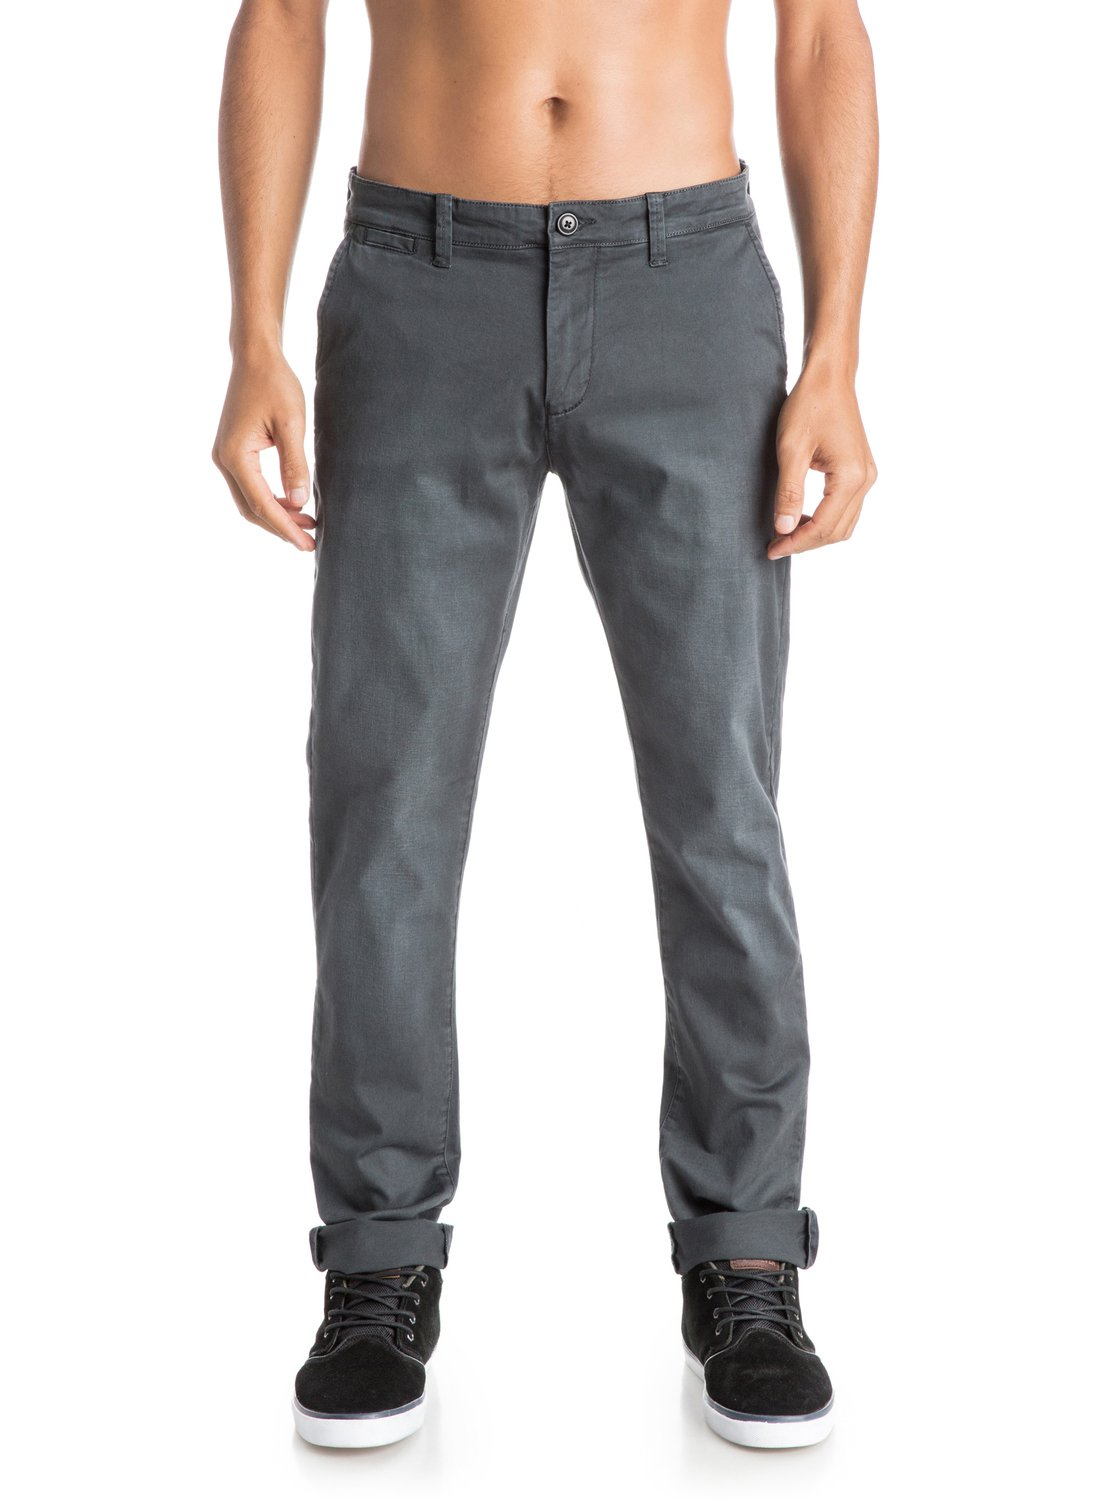 Athletic fit--it doesn't mean it's for super fit people, it really means it's a nice straight/roomy thigh with a tapered ankle and calf. Levis is a good one, but also check out Target. Their Goodfellows brand has a ton of jeans in athletic fit, and Levis Denizen is also a good athletic fit.